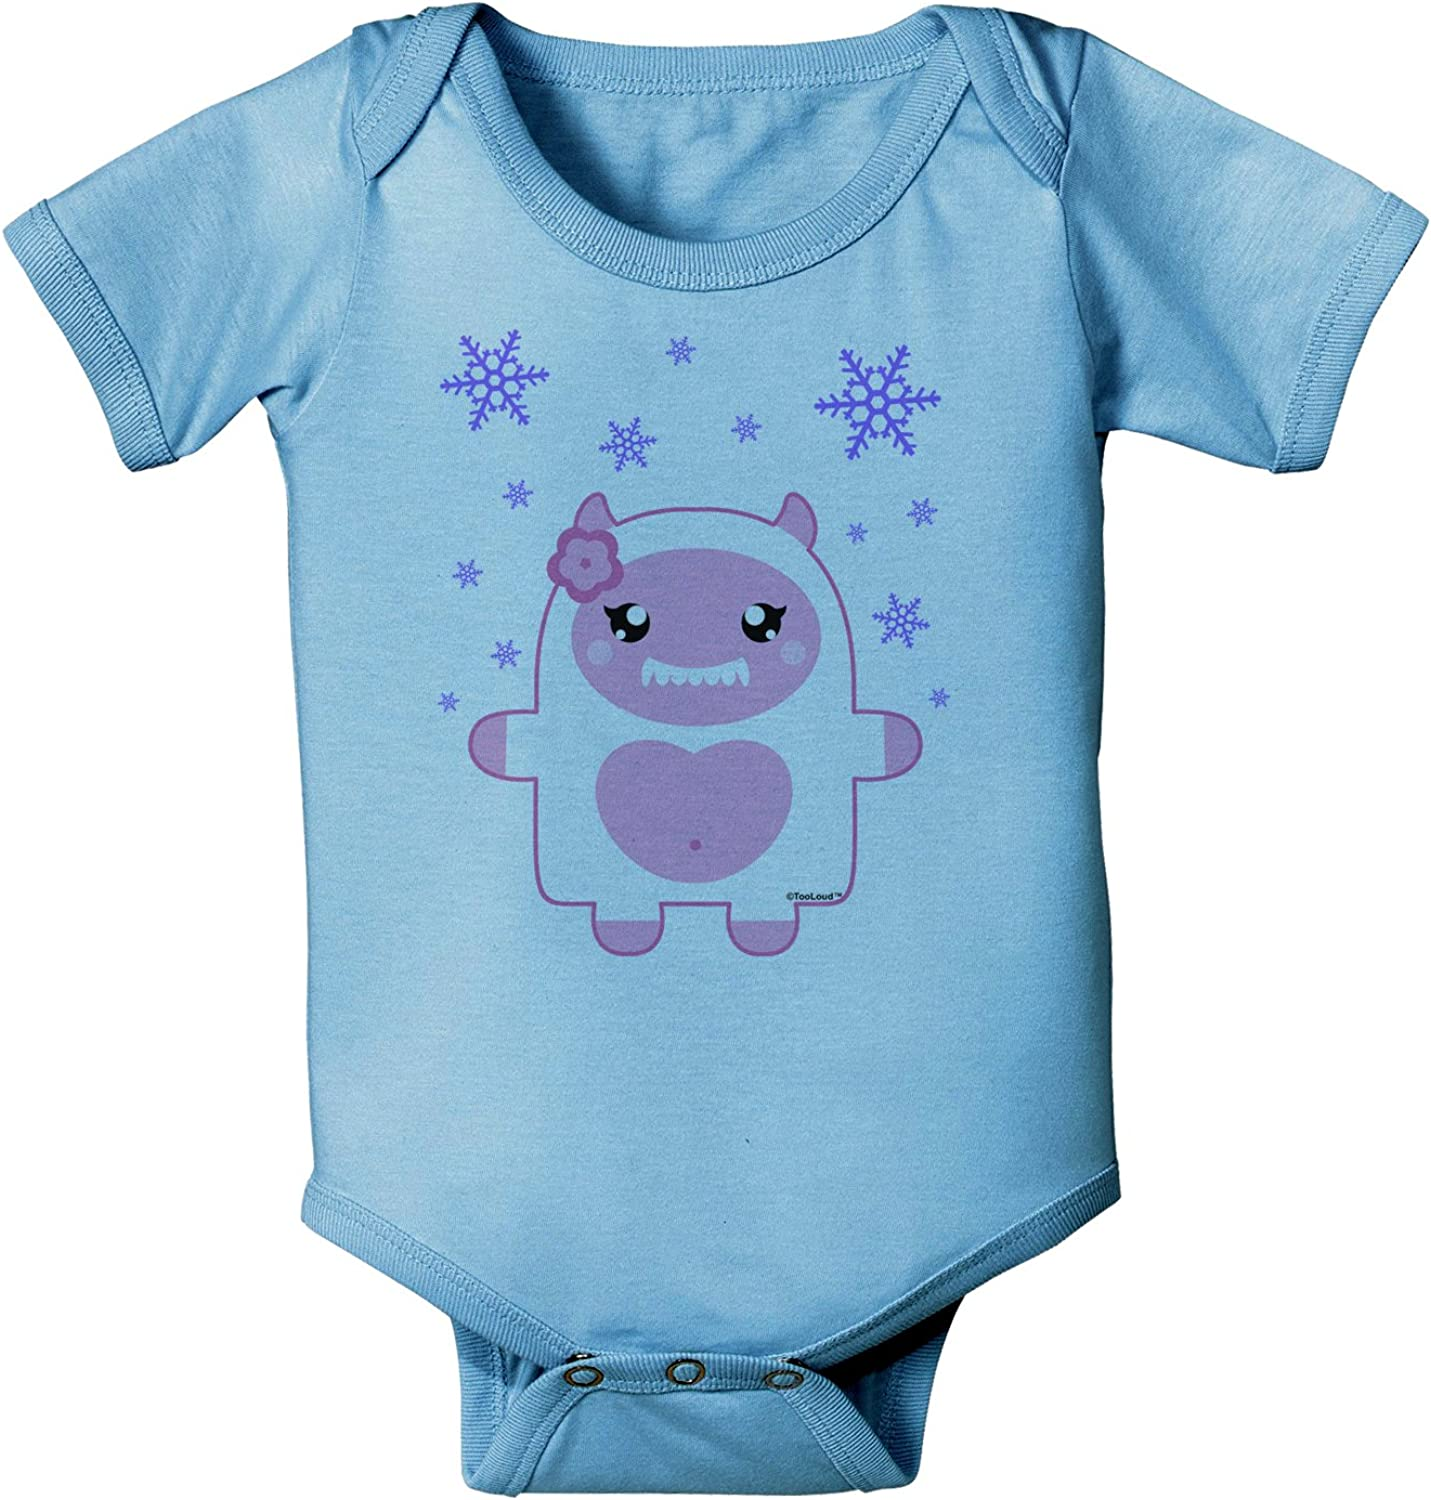 TooLoud Cute Chick with Bow Baby Romper Bodysuit